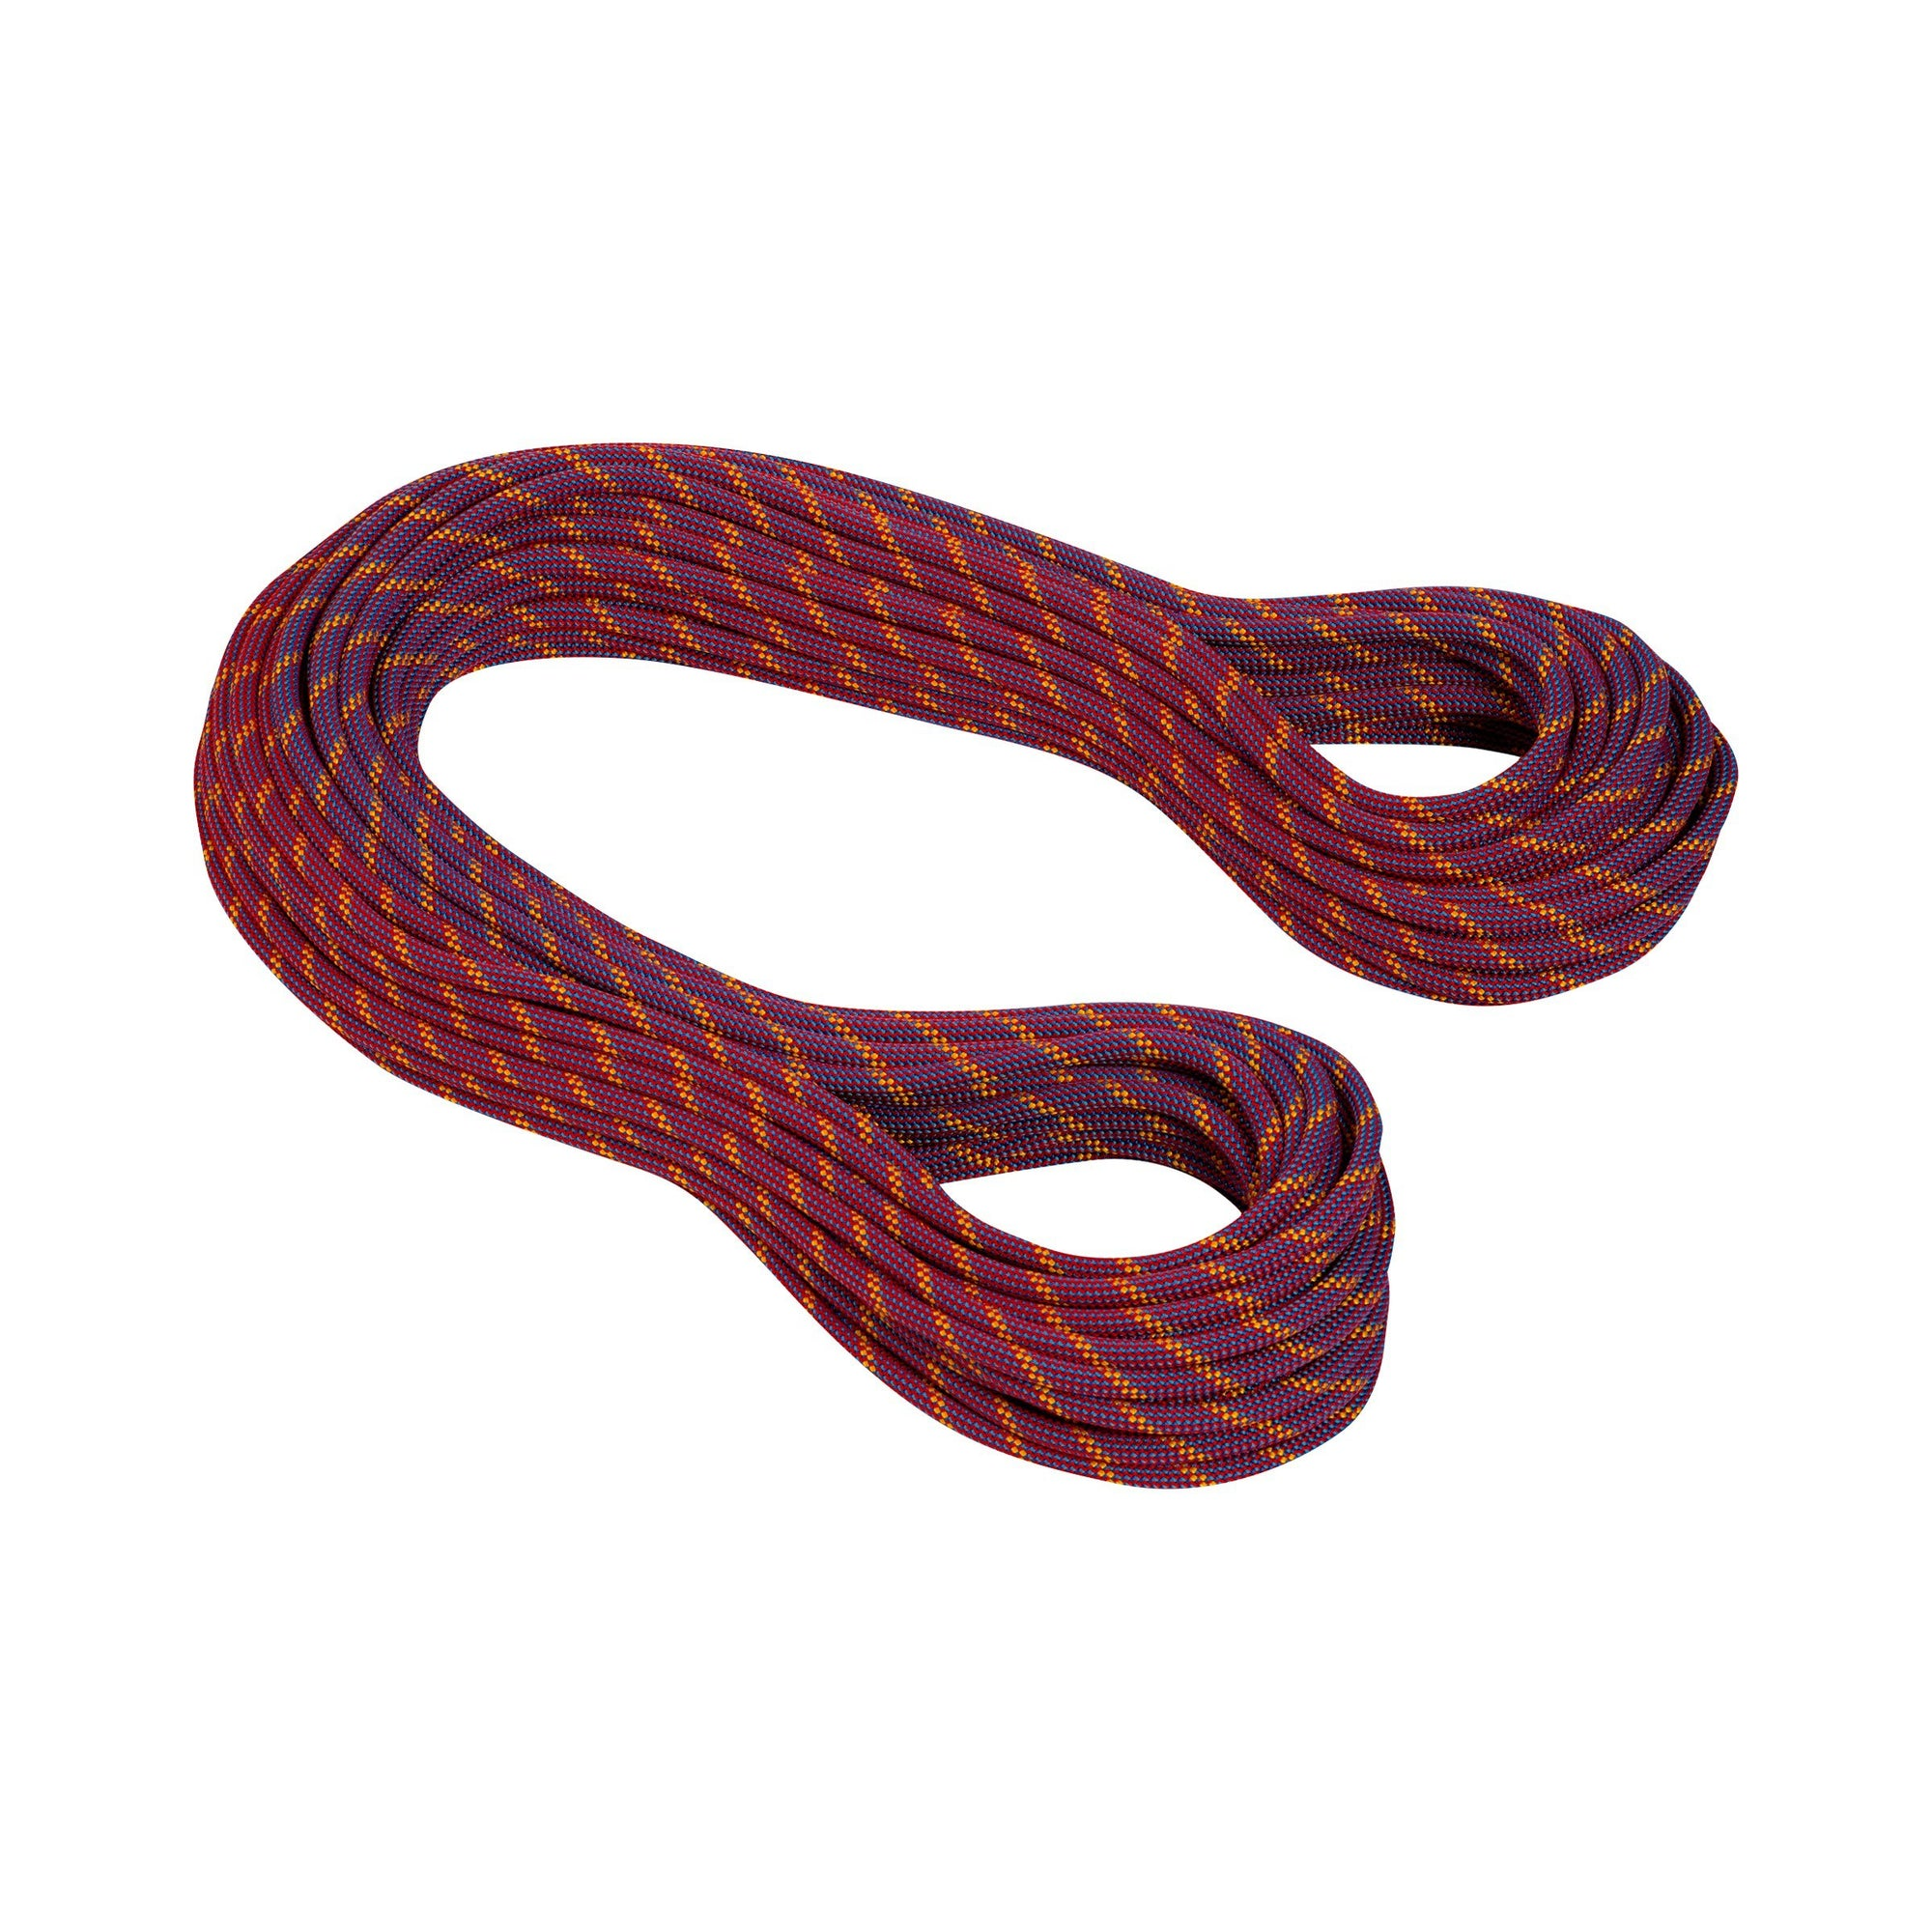 Mammut Genesis Dry 8.5mm x 50m climbing ropes PURPLE/RED colour